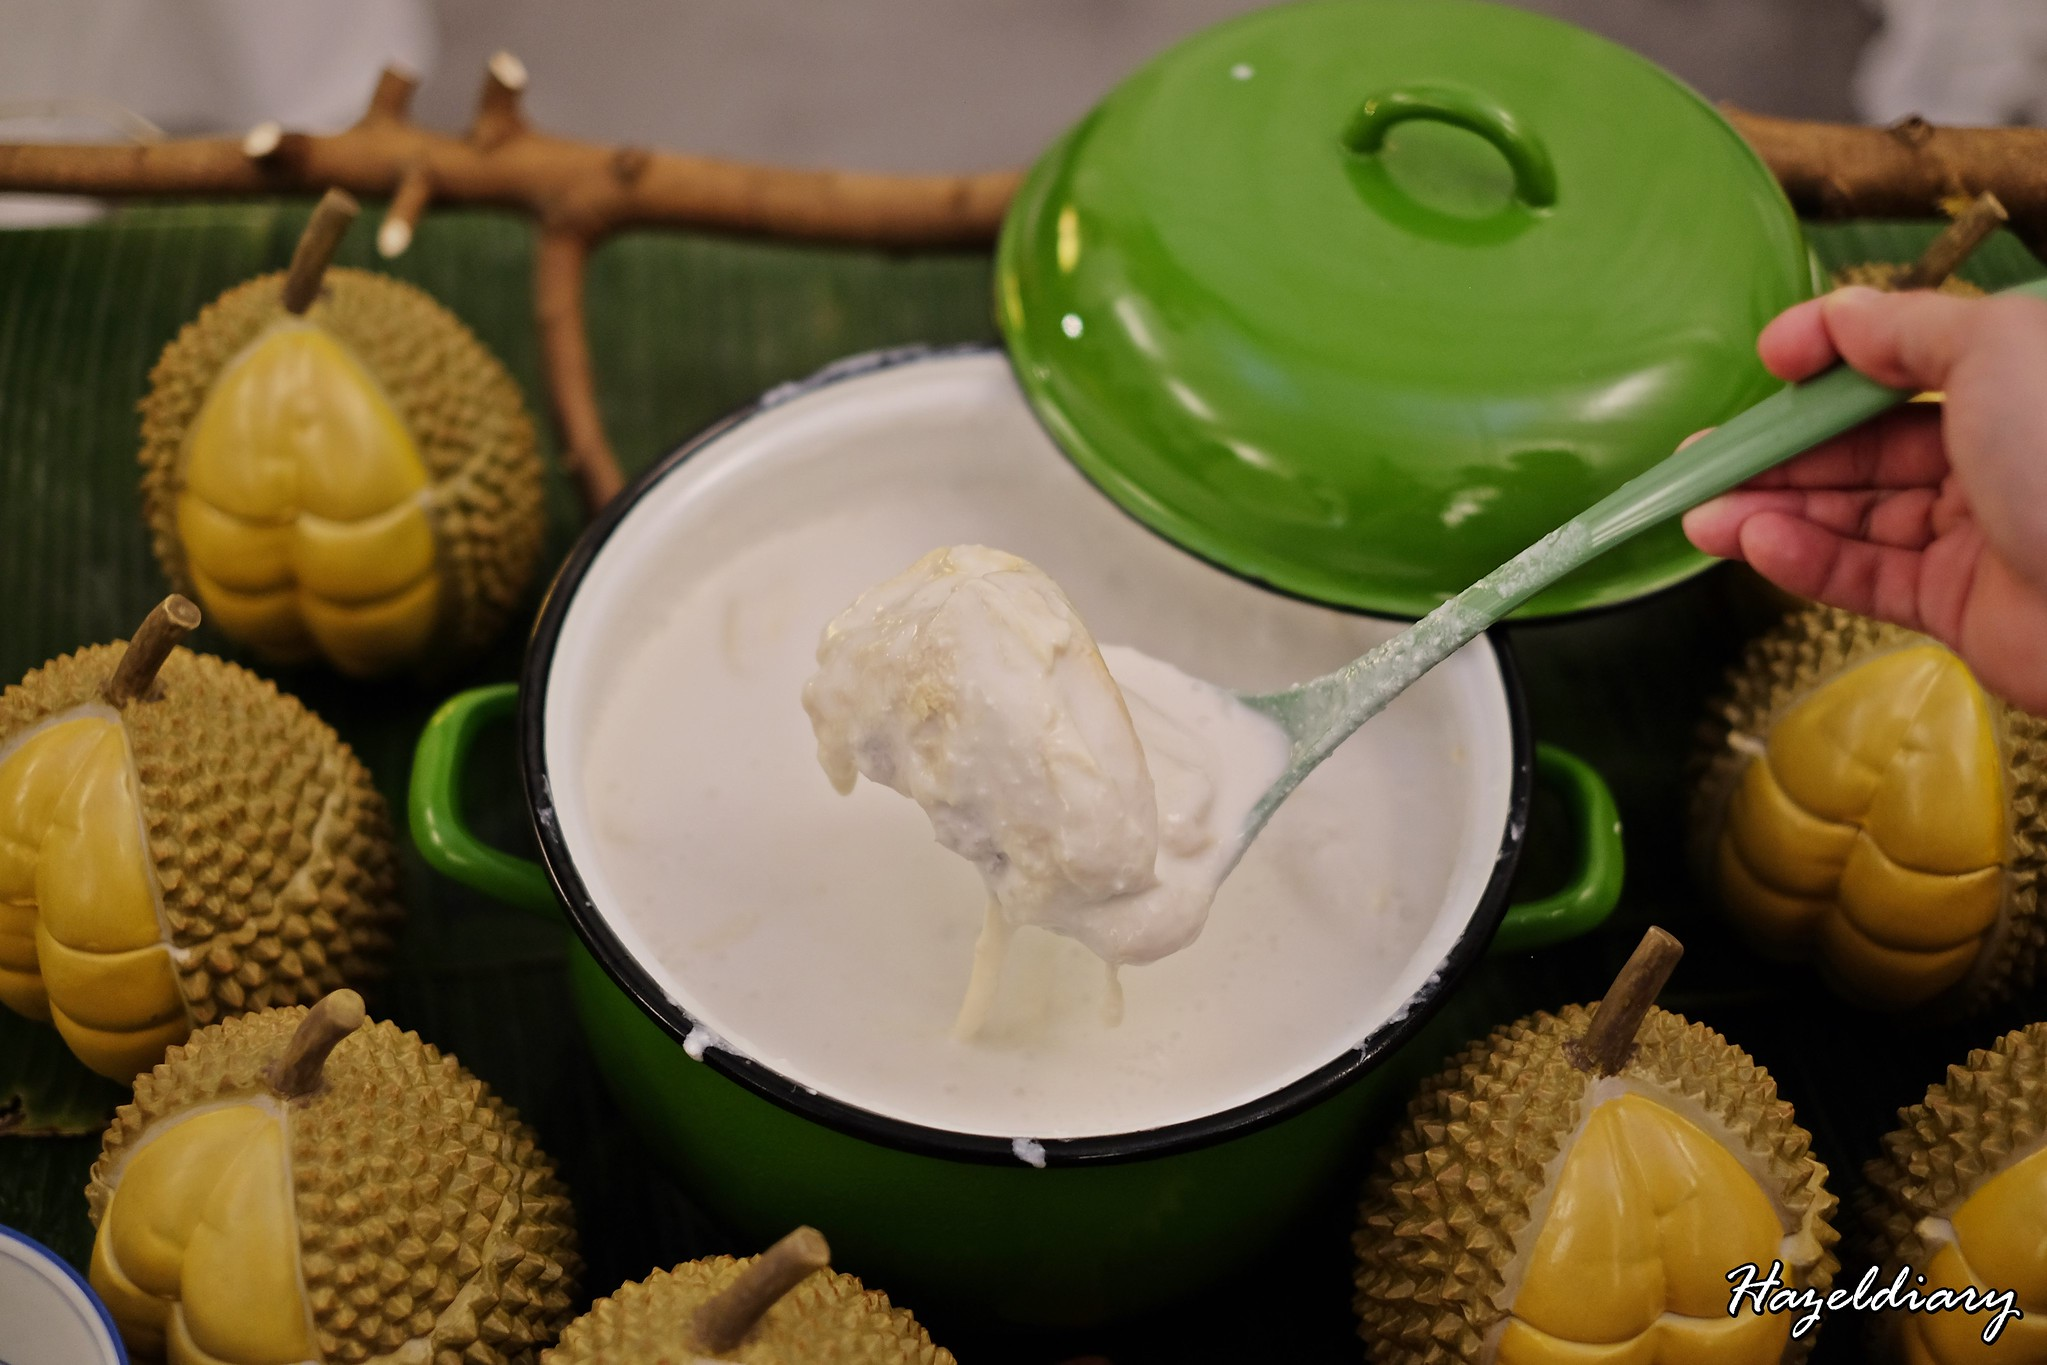 [SG EATS] Taiwan Porridge Fare At Coffee Lounge & Durian Fiesta 2019 | Goodwood Park Hotel